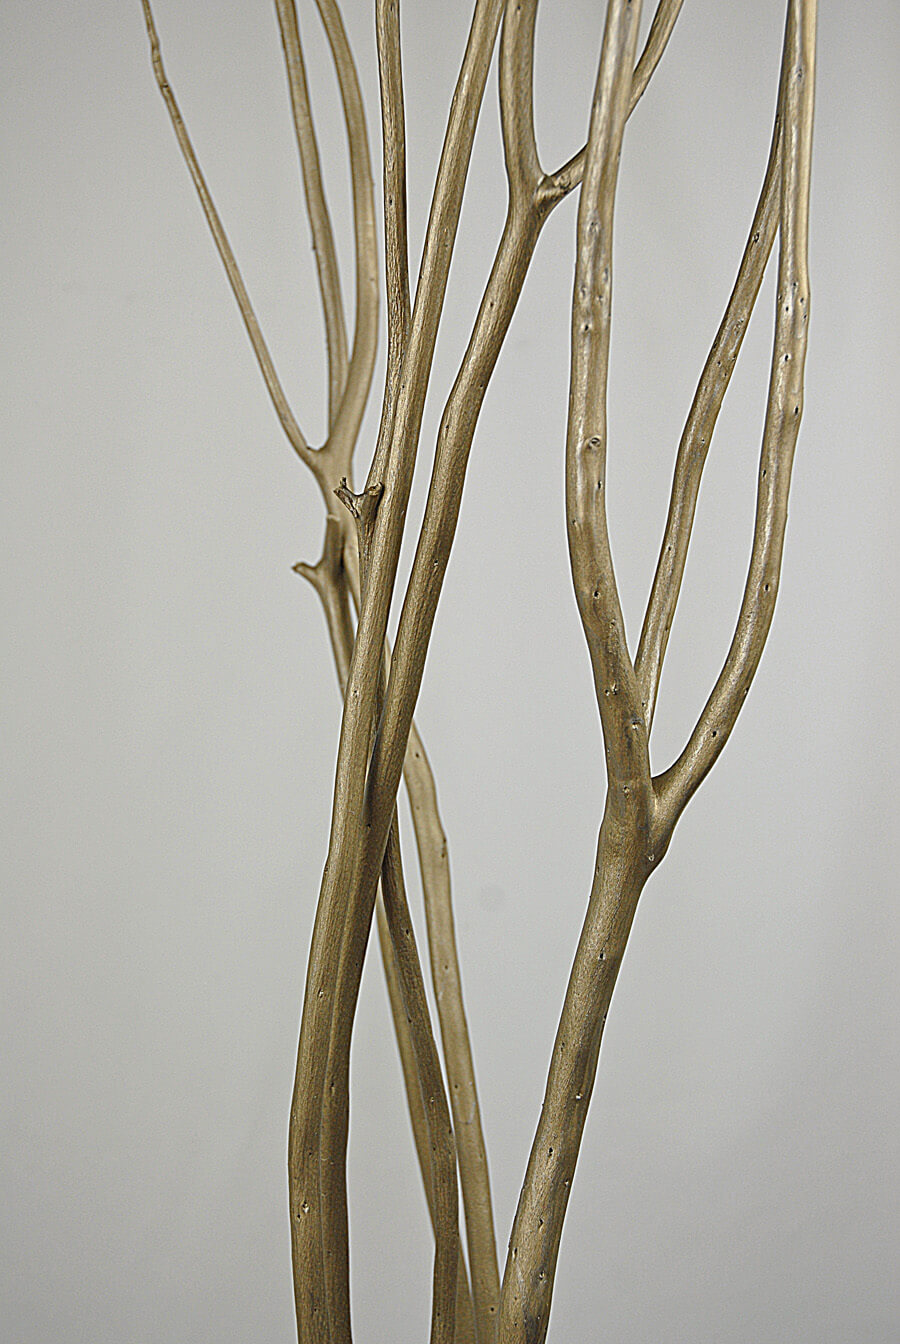 artificial trees for living room good paint colors a small mitsumata branches silver 50in | 3